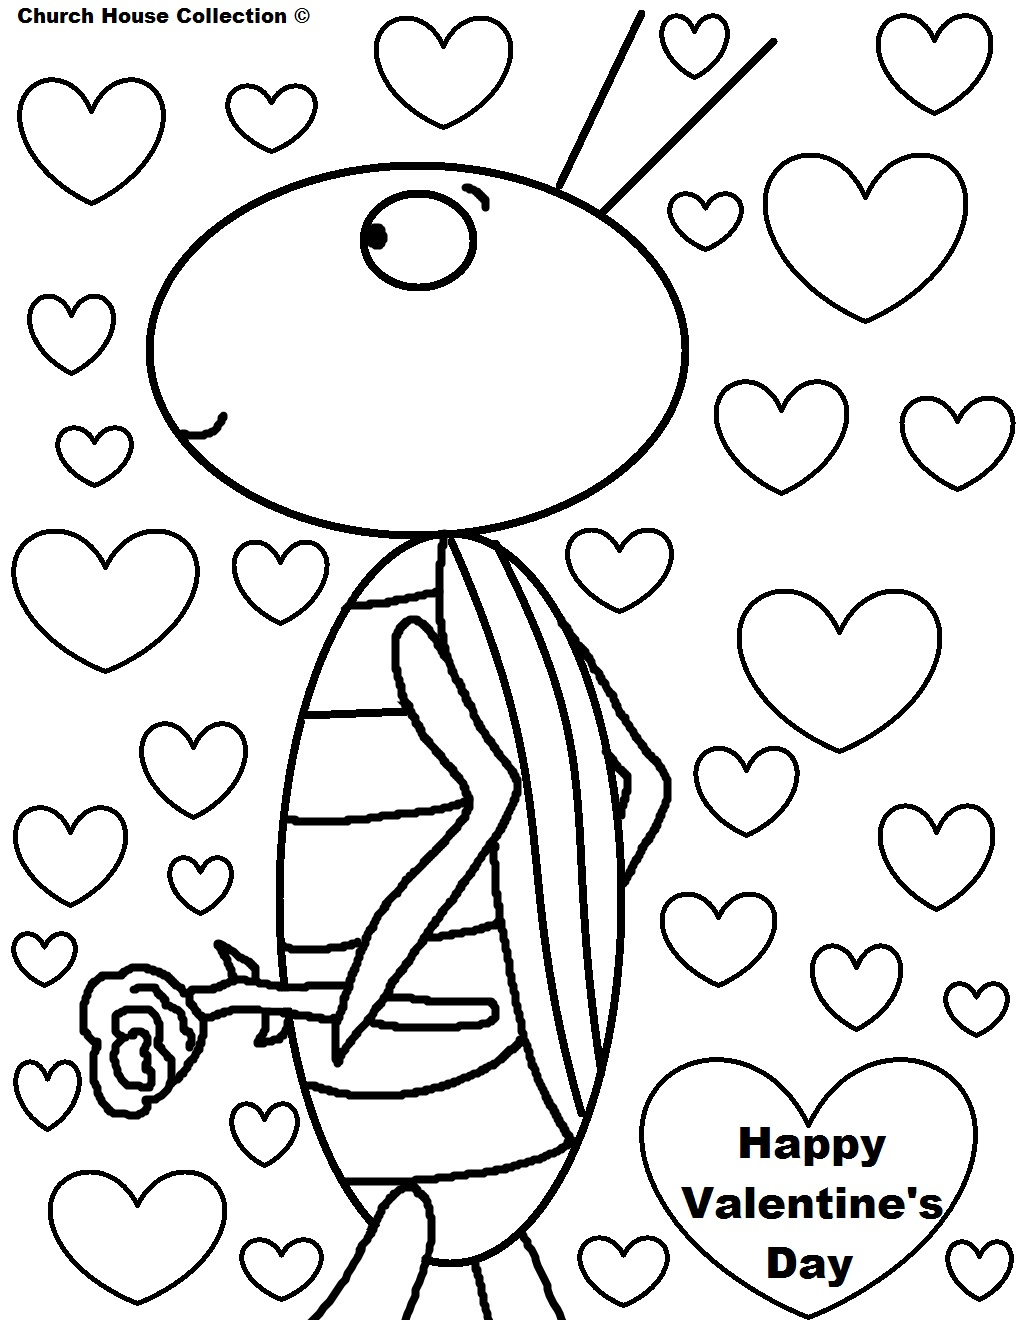 Valentine 39 s day coloring pages for school for Valentines days coloring pages